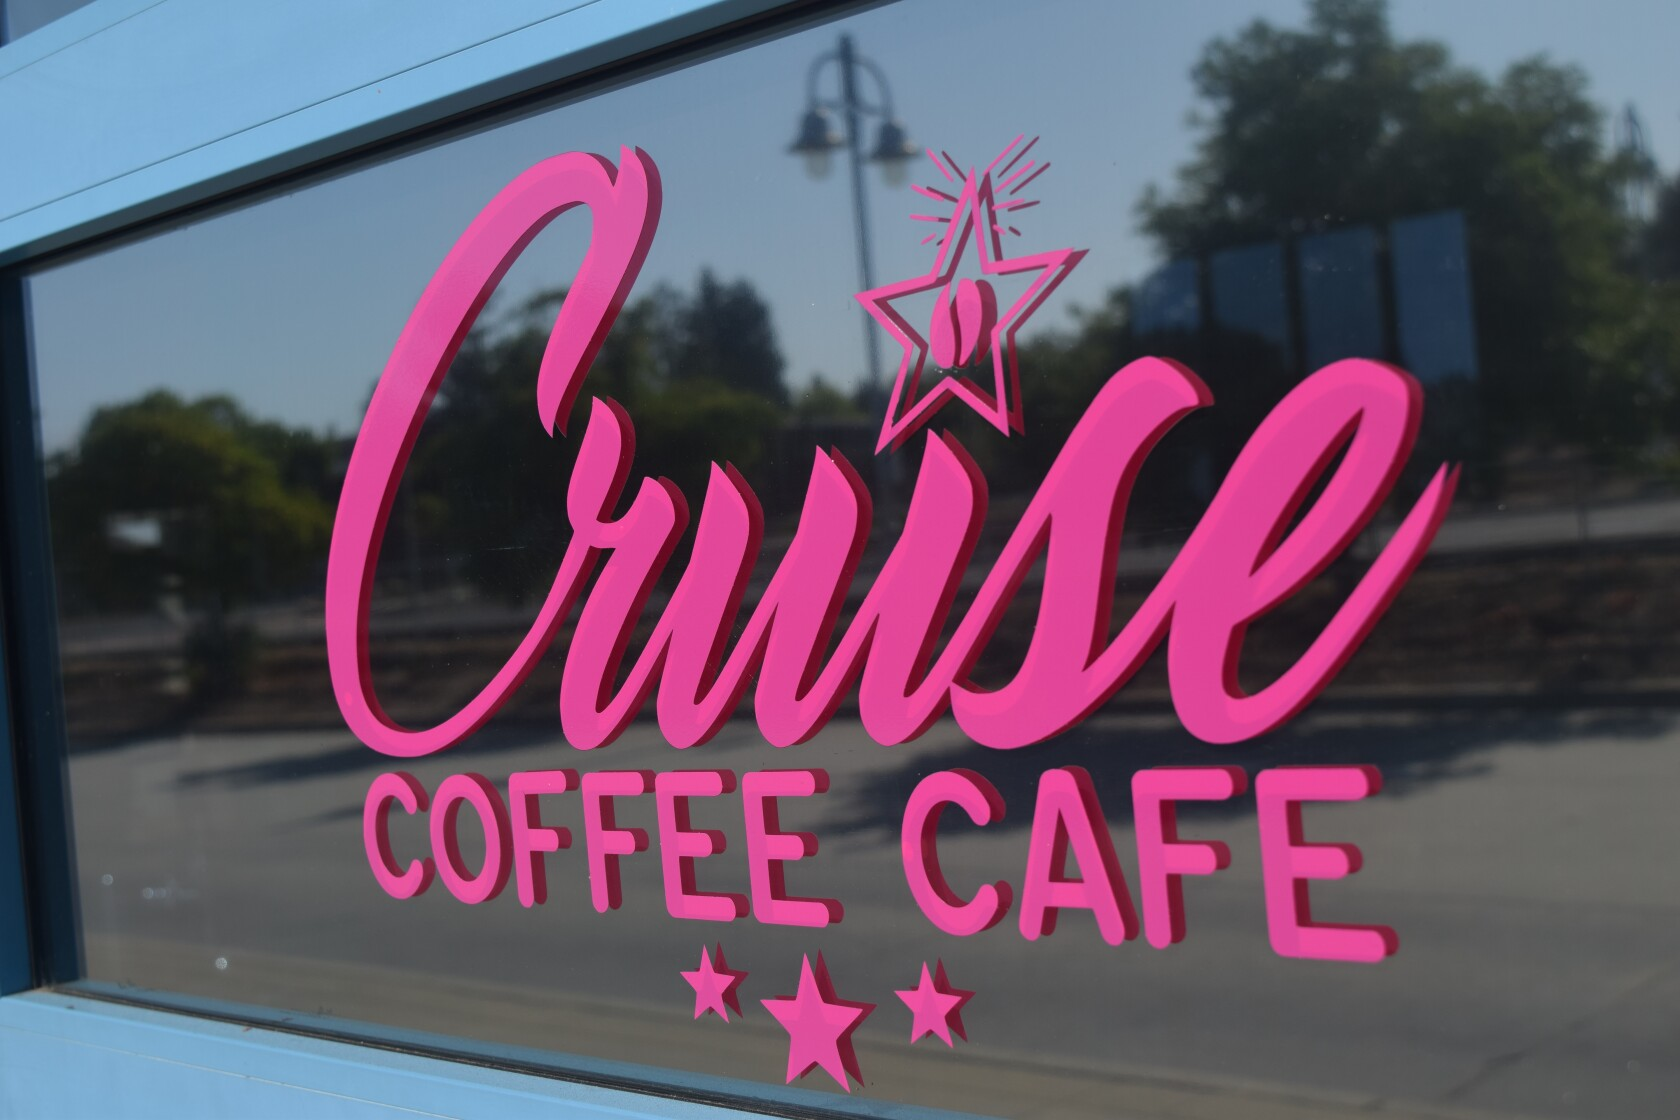 Outside the Cruise Coffee Cafe in Scotts Valley. The cafe, located at 246 Kings Village Road, opened last month and will host a ribbon-cutting ceremony on Thursday from 5:30 to 7 p.m.